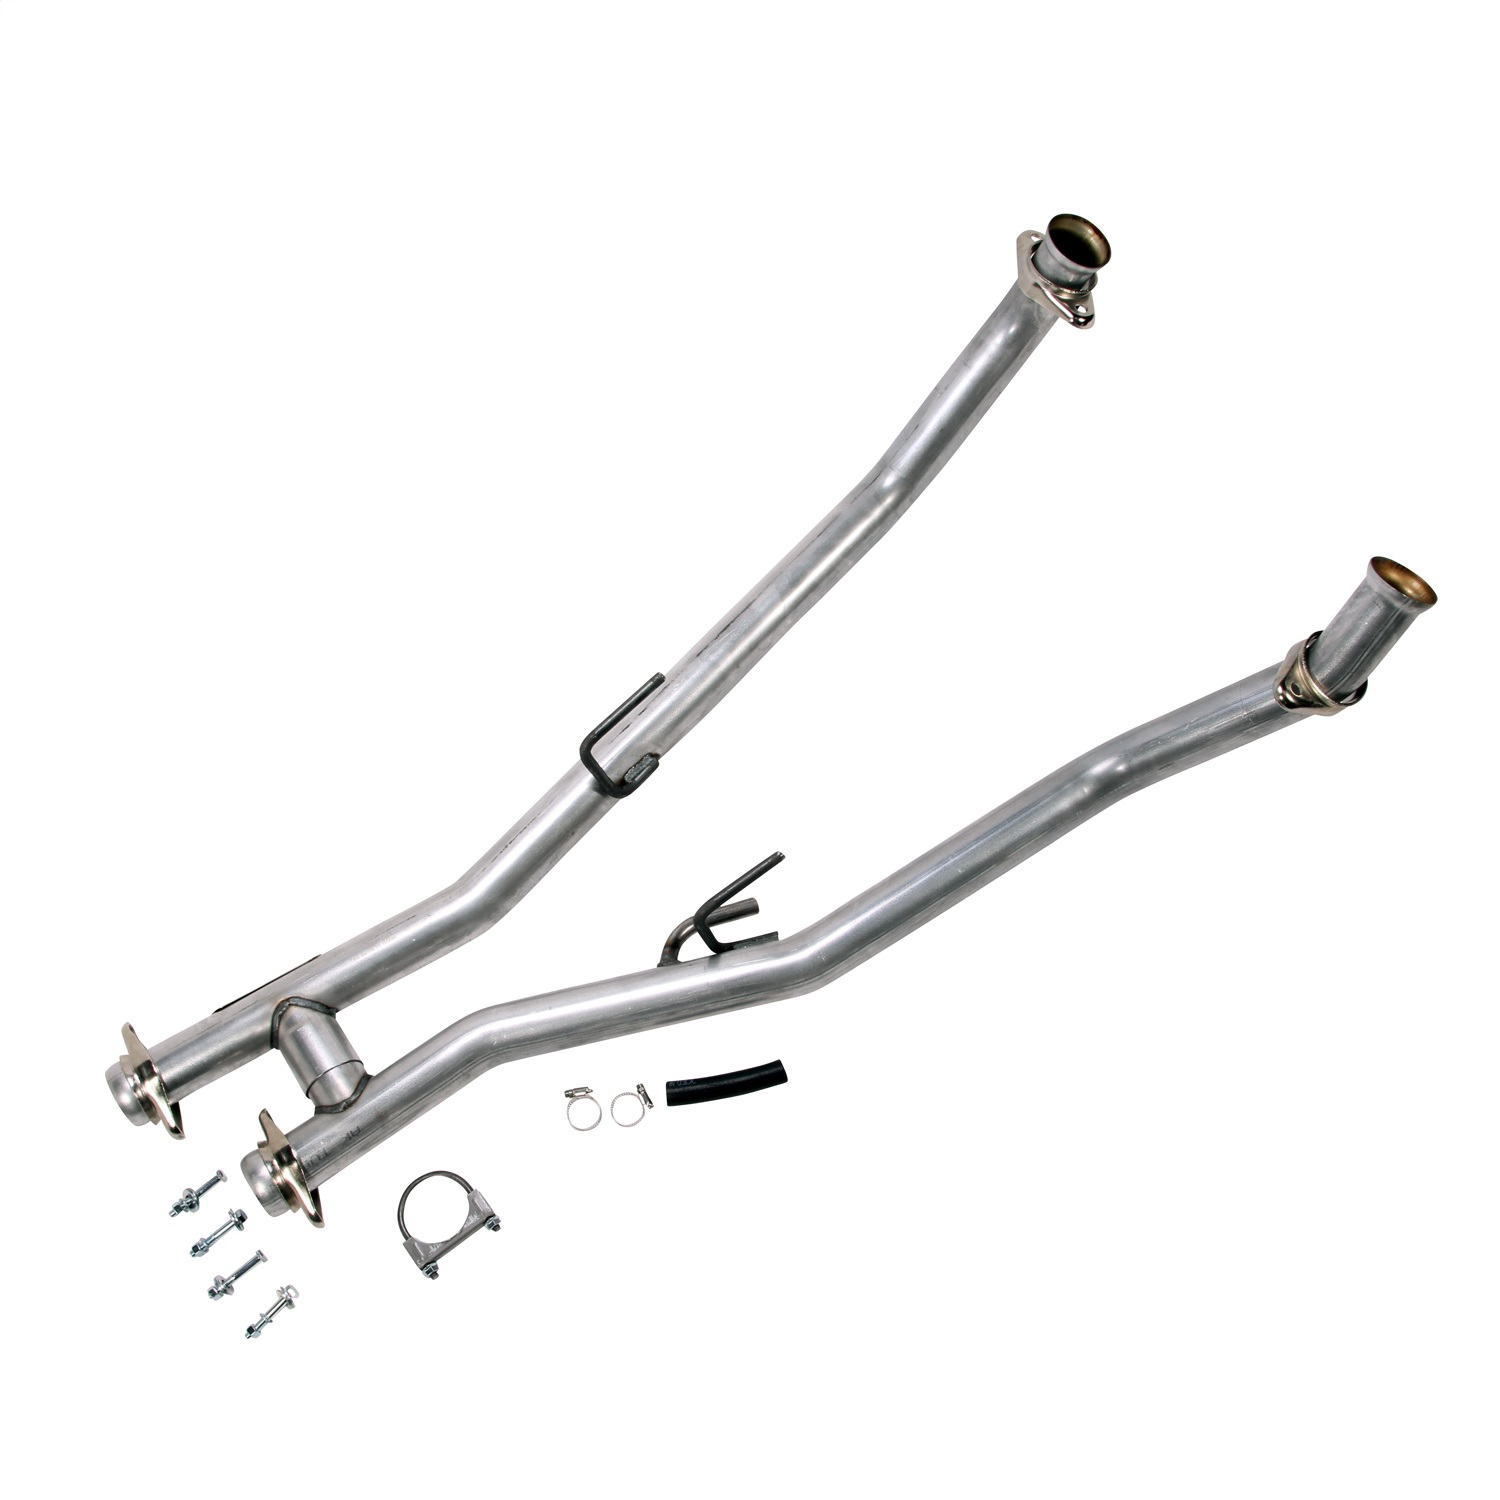 New Bbk Performance High Flow H Pipe Assembly 86 93 Mustang Exhaust Ford Fs Fx